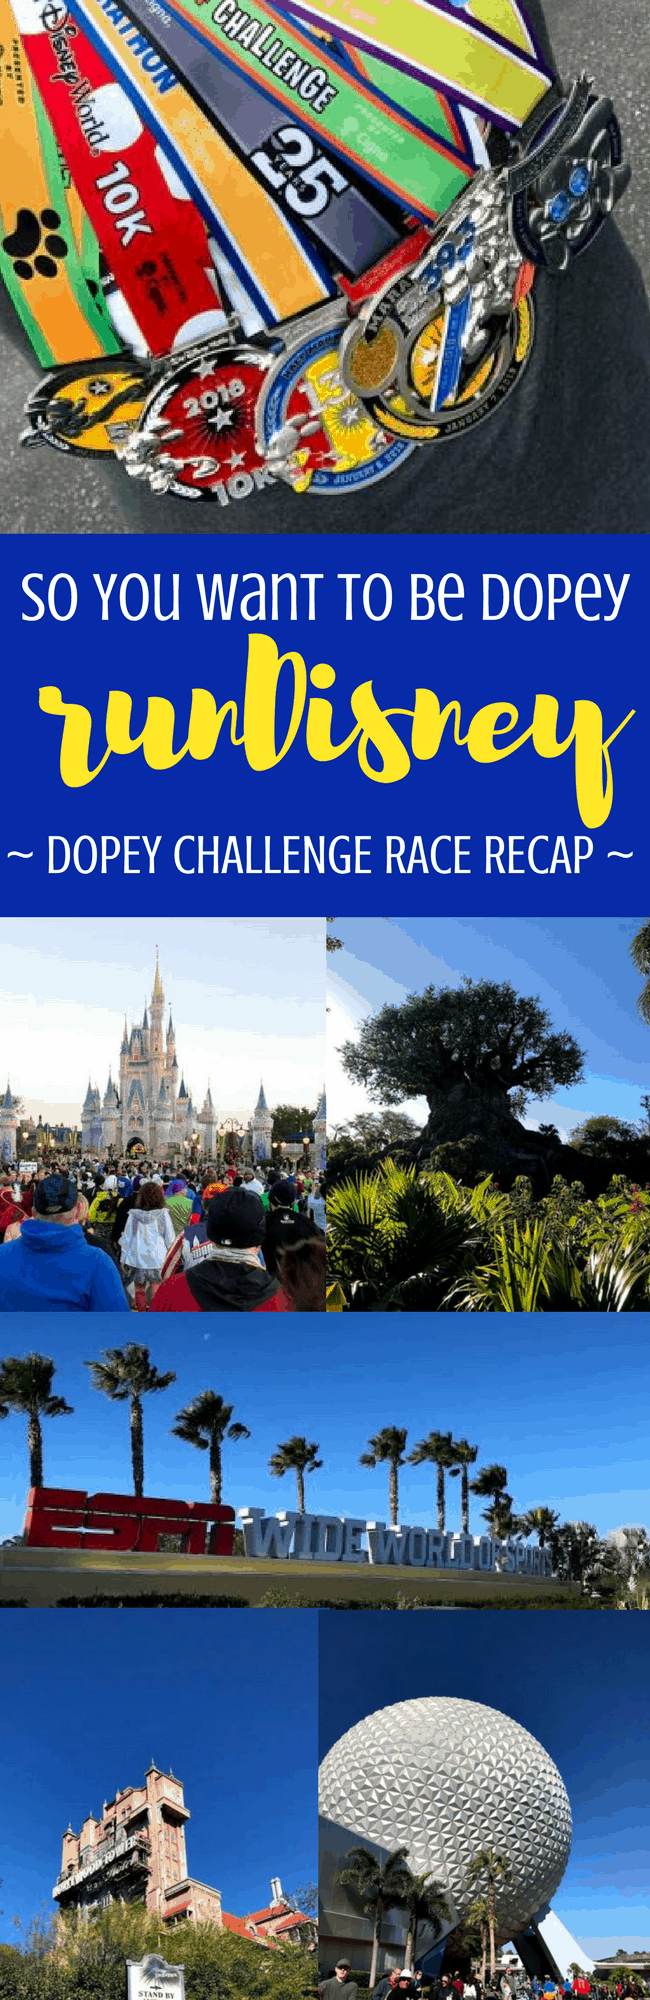 rundisney offers the biggest running challenge out there: the Dopey Challenge. Heres what you need to know about running Dopey. #rundisney #running #racerecap #waltdisneyworld #disneyworld